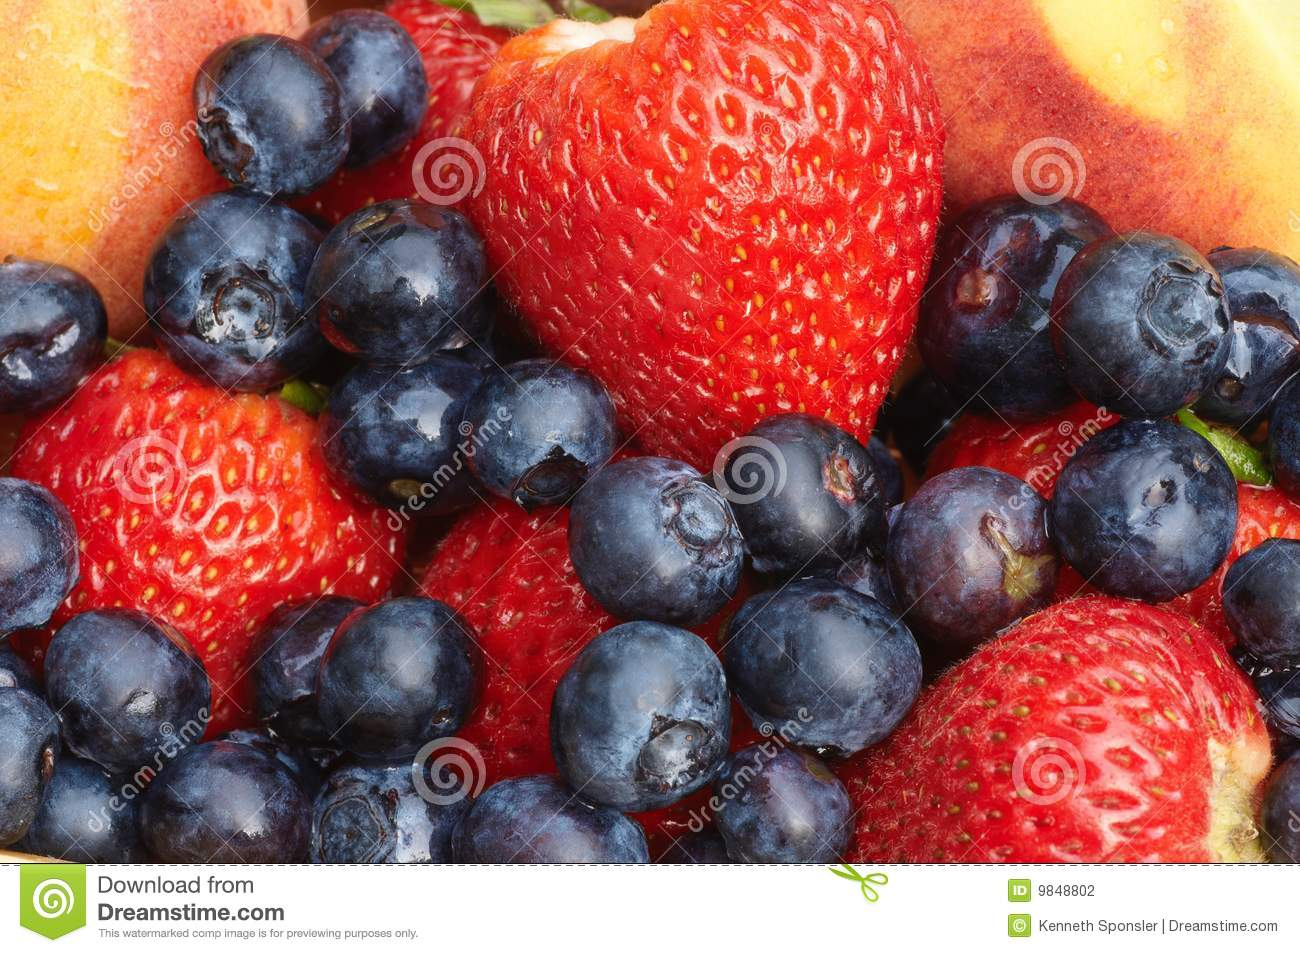 Fruit Medley Stock Photography - Image: 9848802